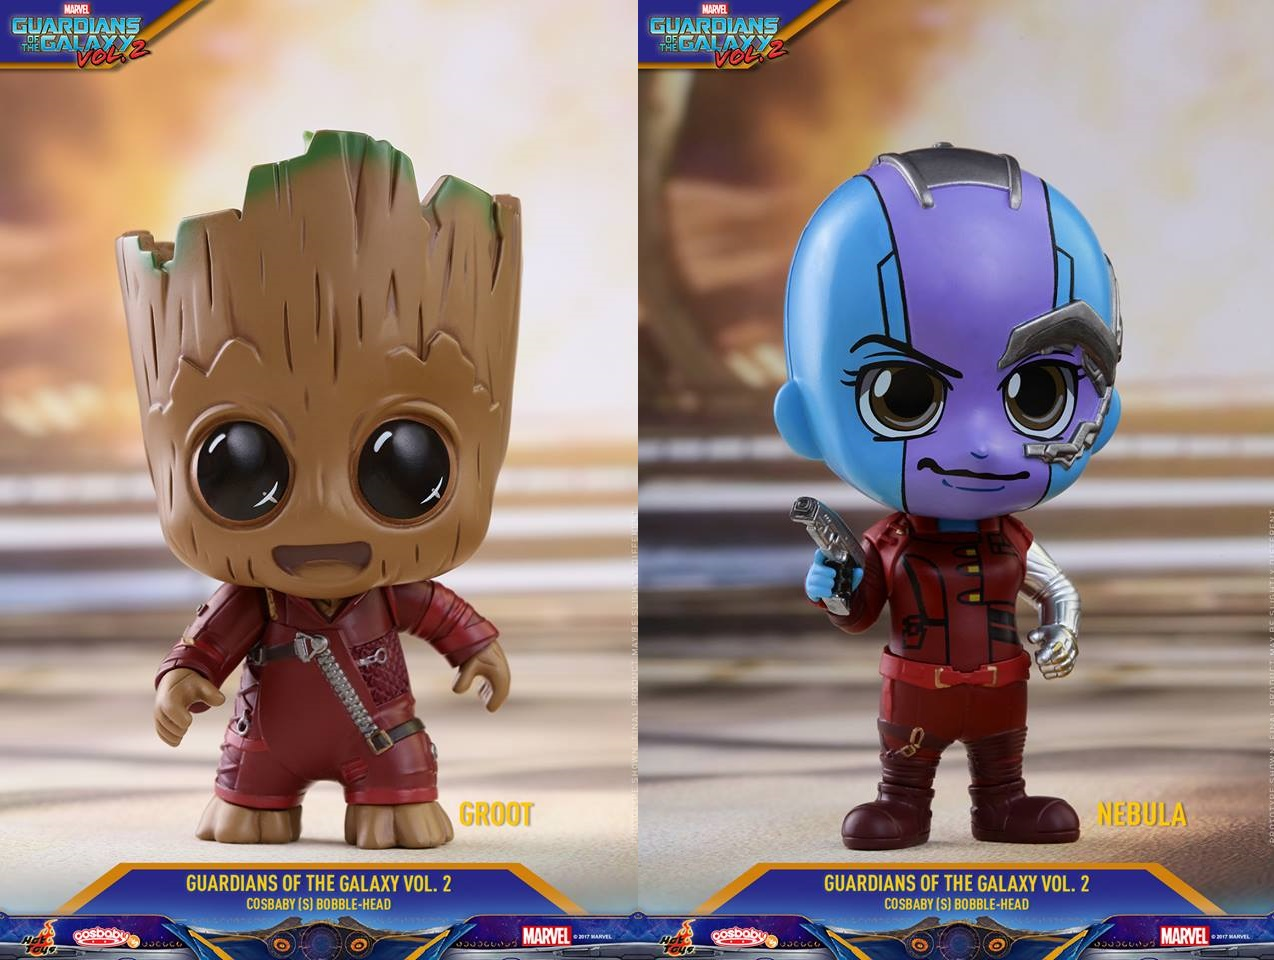 36ca7c7e60d Marvel's Guardians of the Galaxy Vol. 2 Cosbaby Series 2 Mini Figures by  Hot Toys